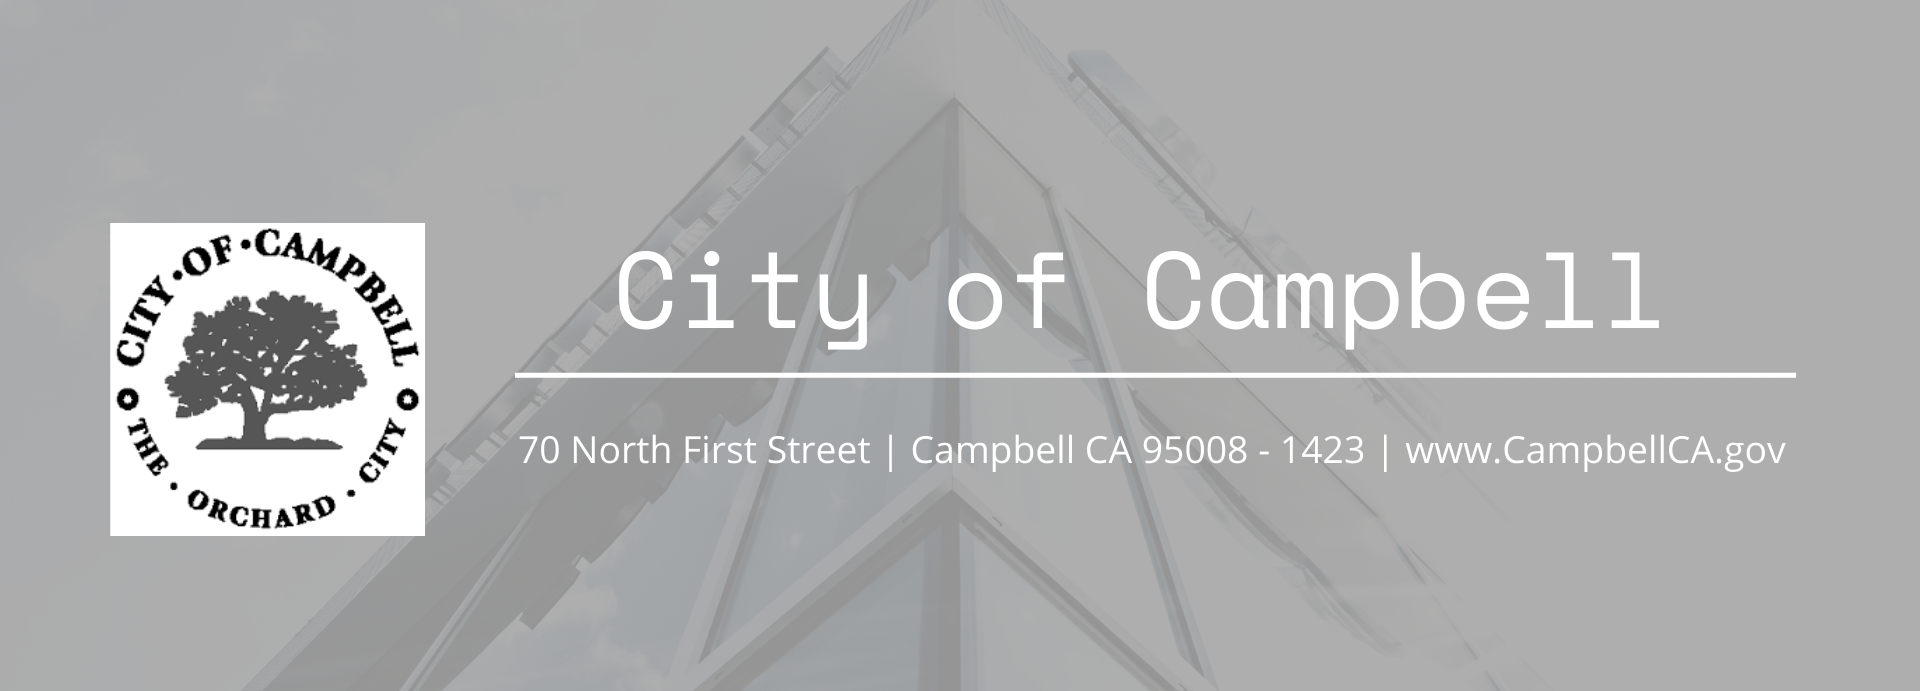 City of Campbell - Request for Proposals (RFP) for Measure O